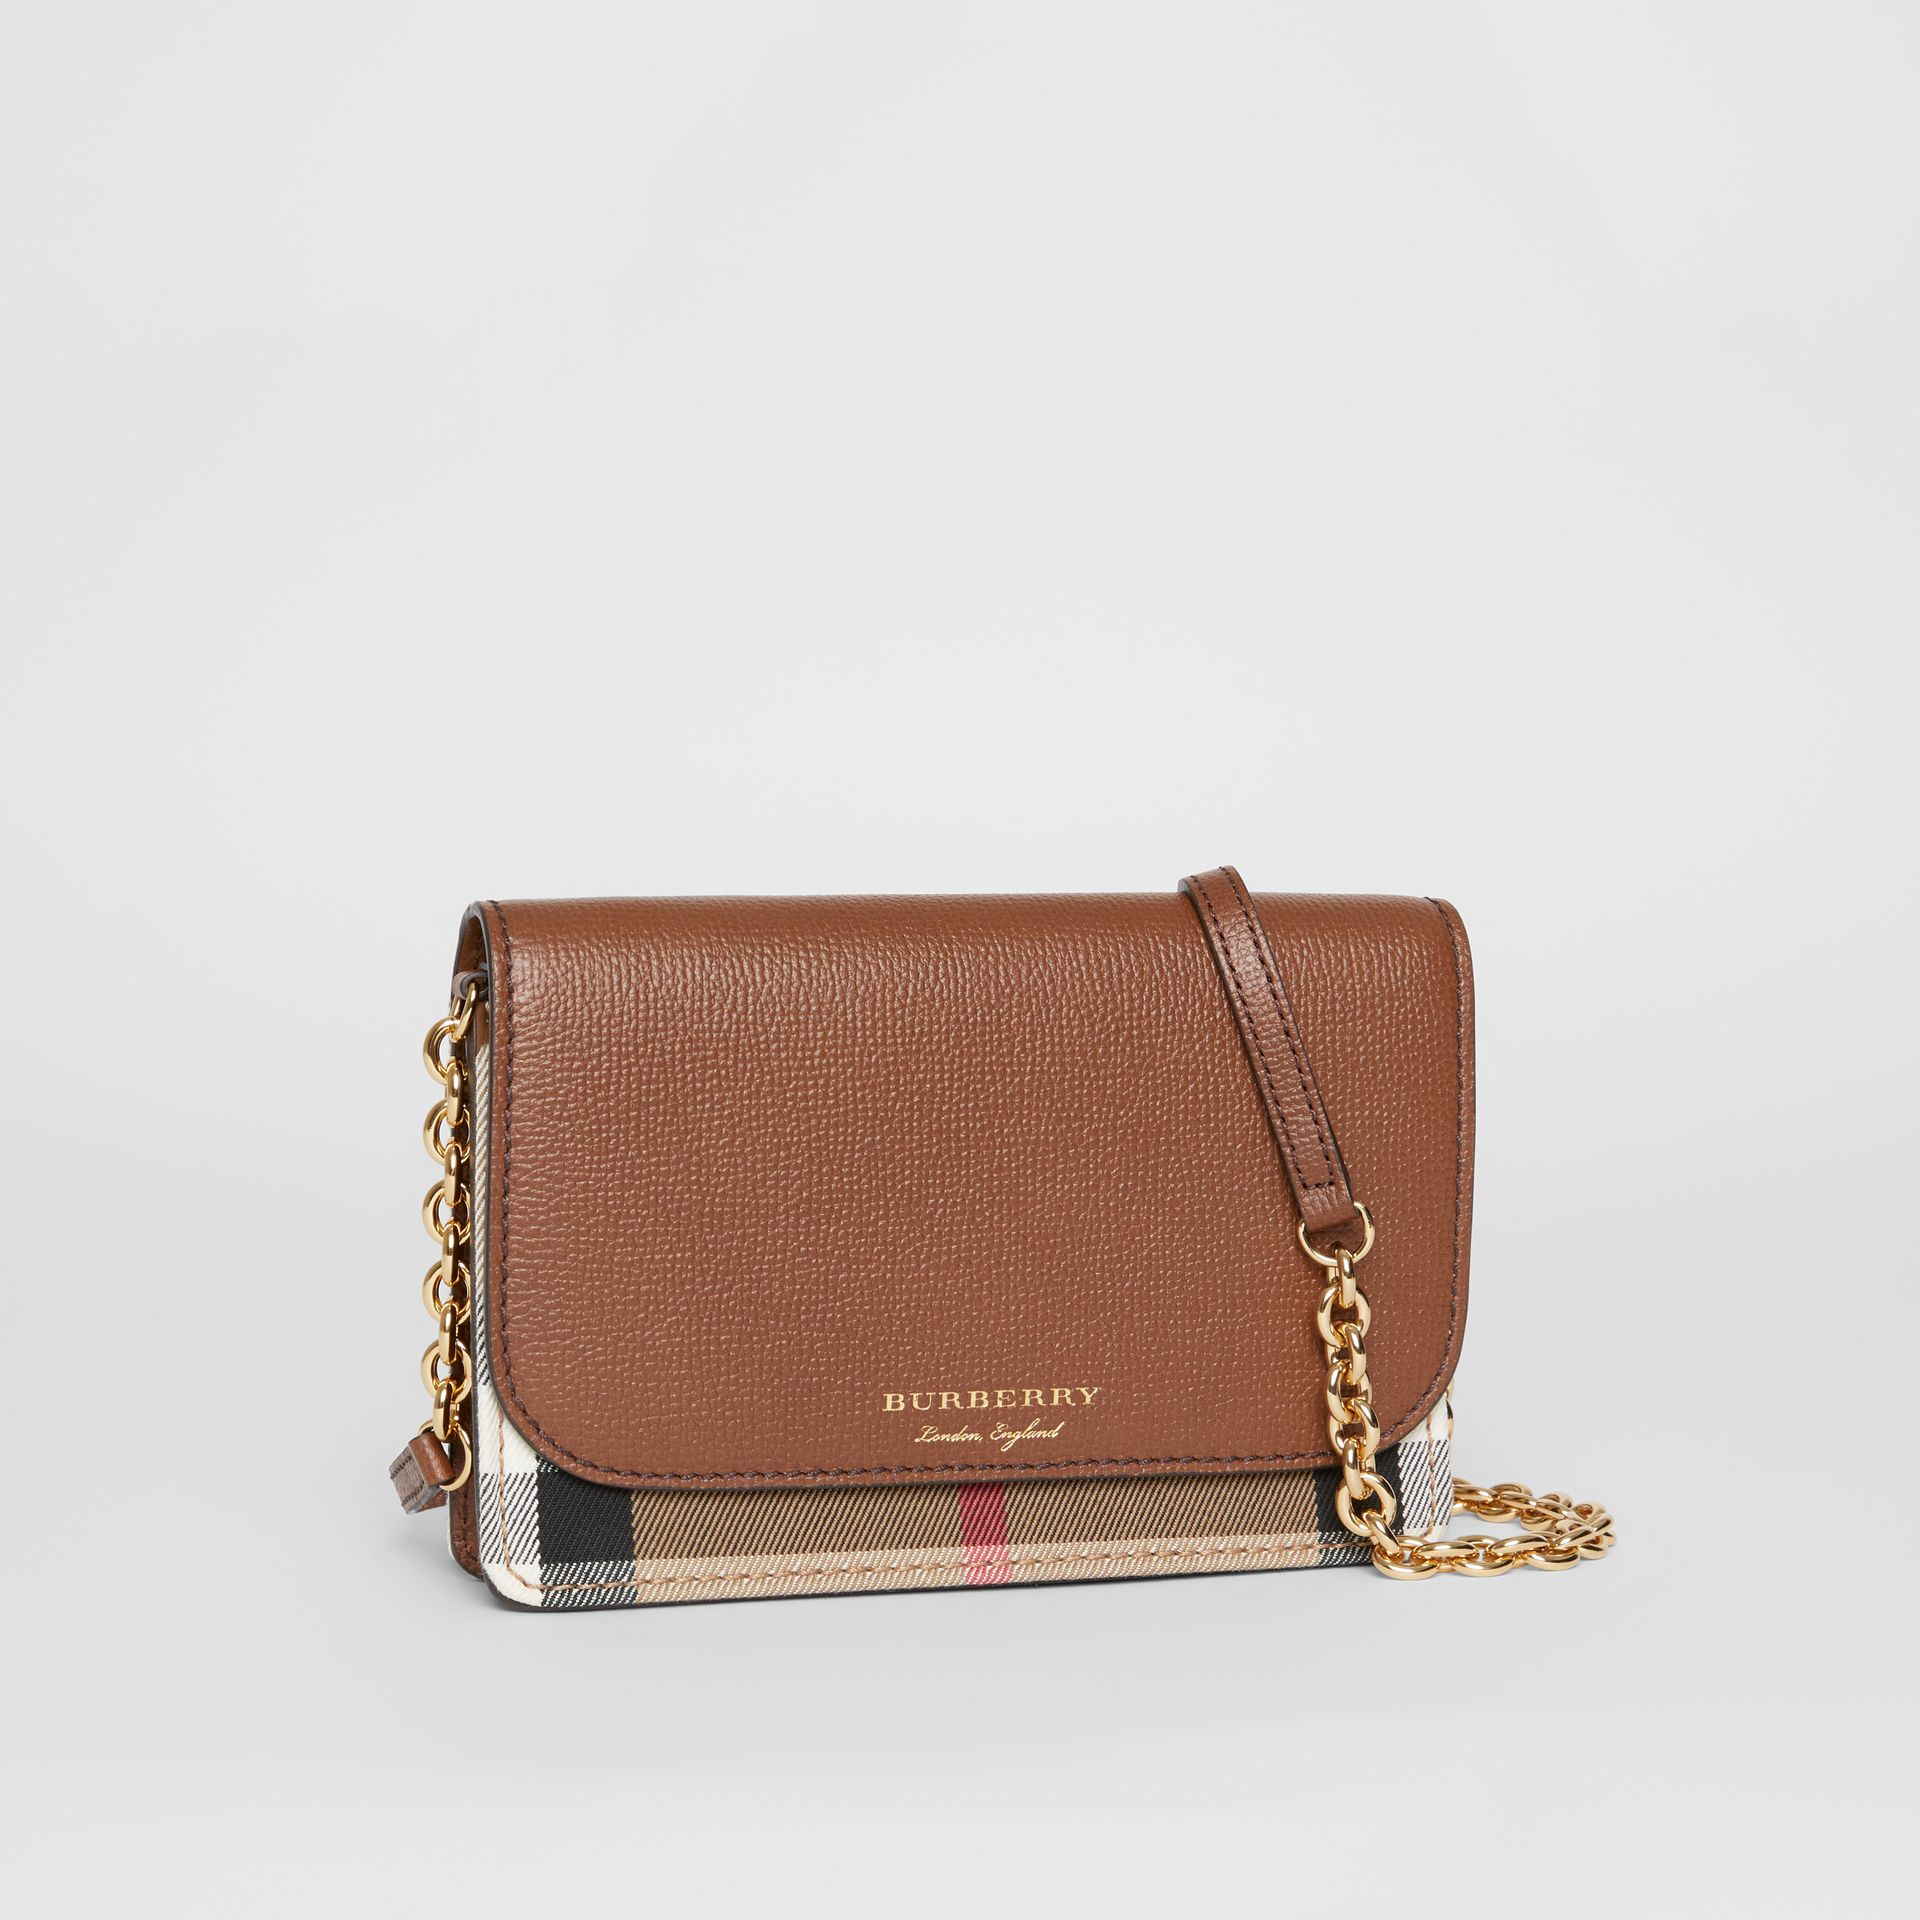 Leather and House Check Wallet with Detachable Strap in Tan - Women | Burberry - gallery image 6